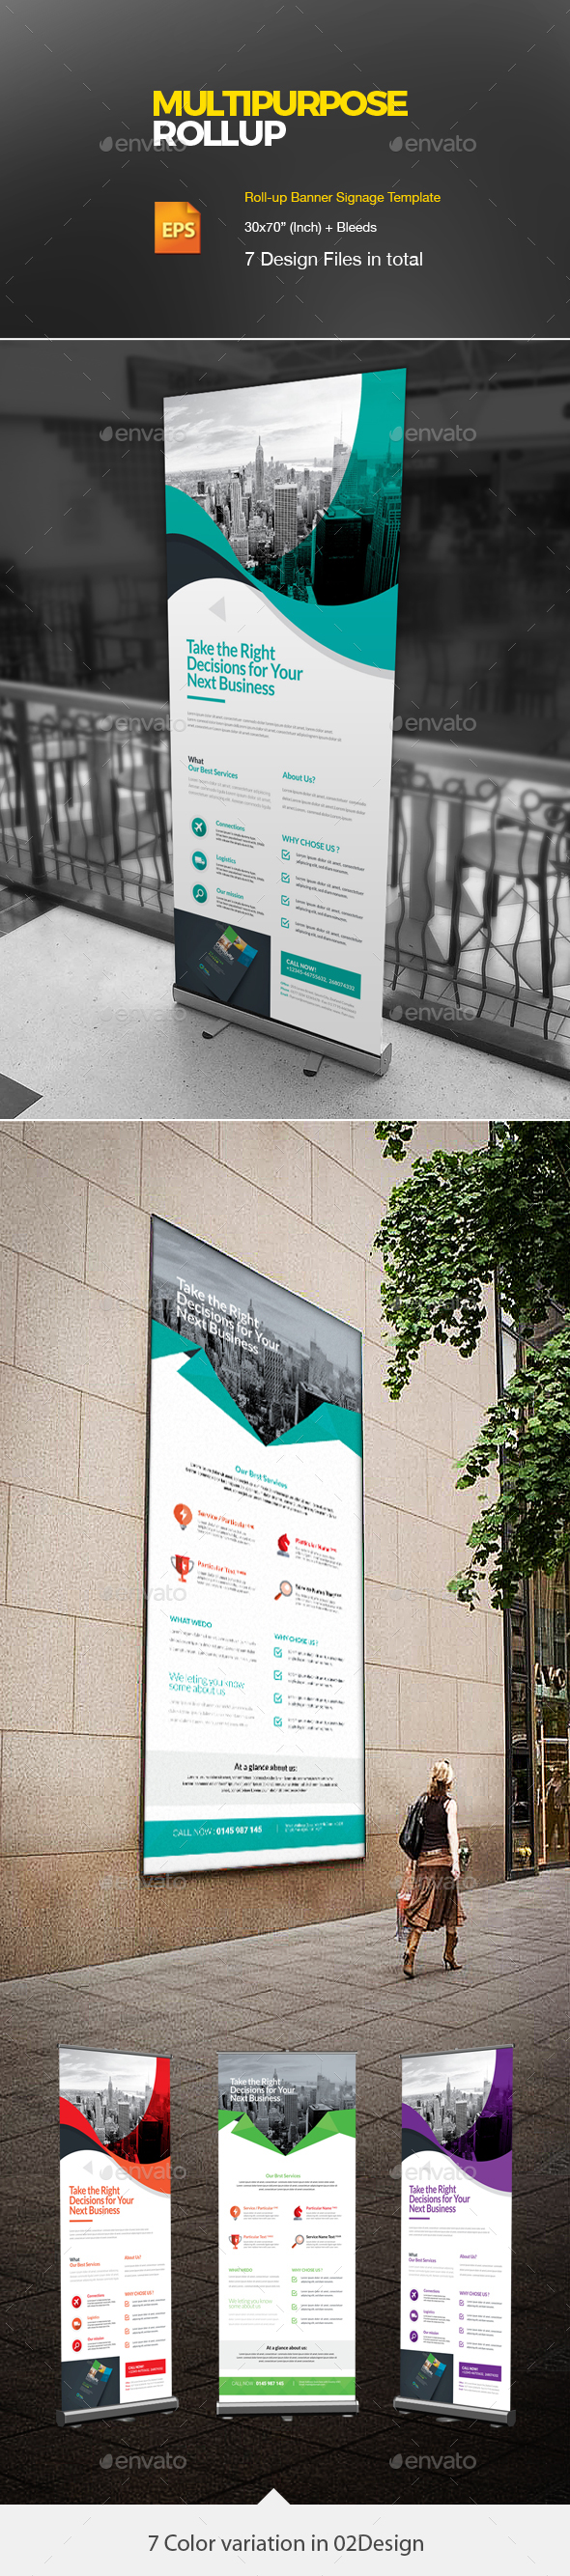 Corporate Roll up Bundle 2 in 1 - Signage Print Templates